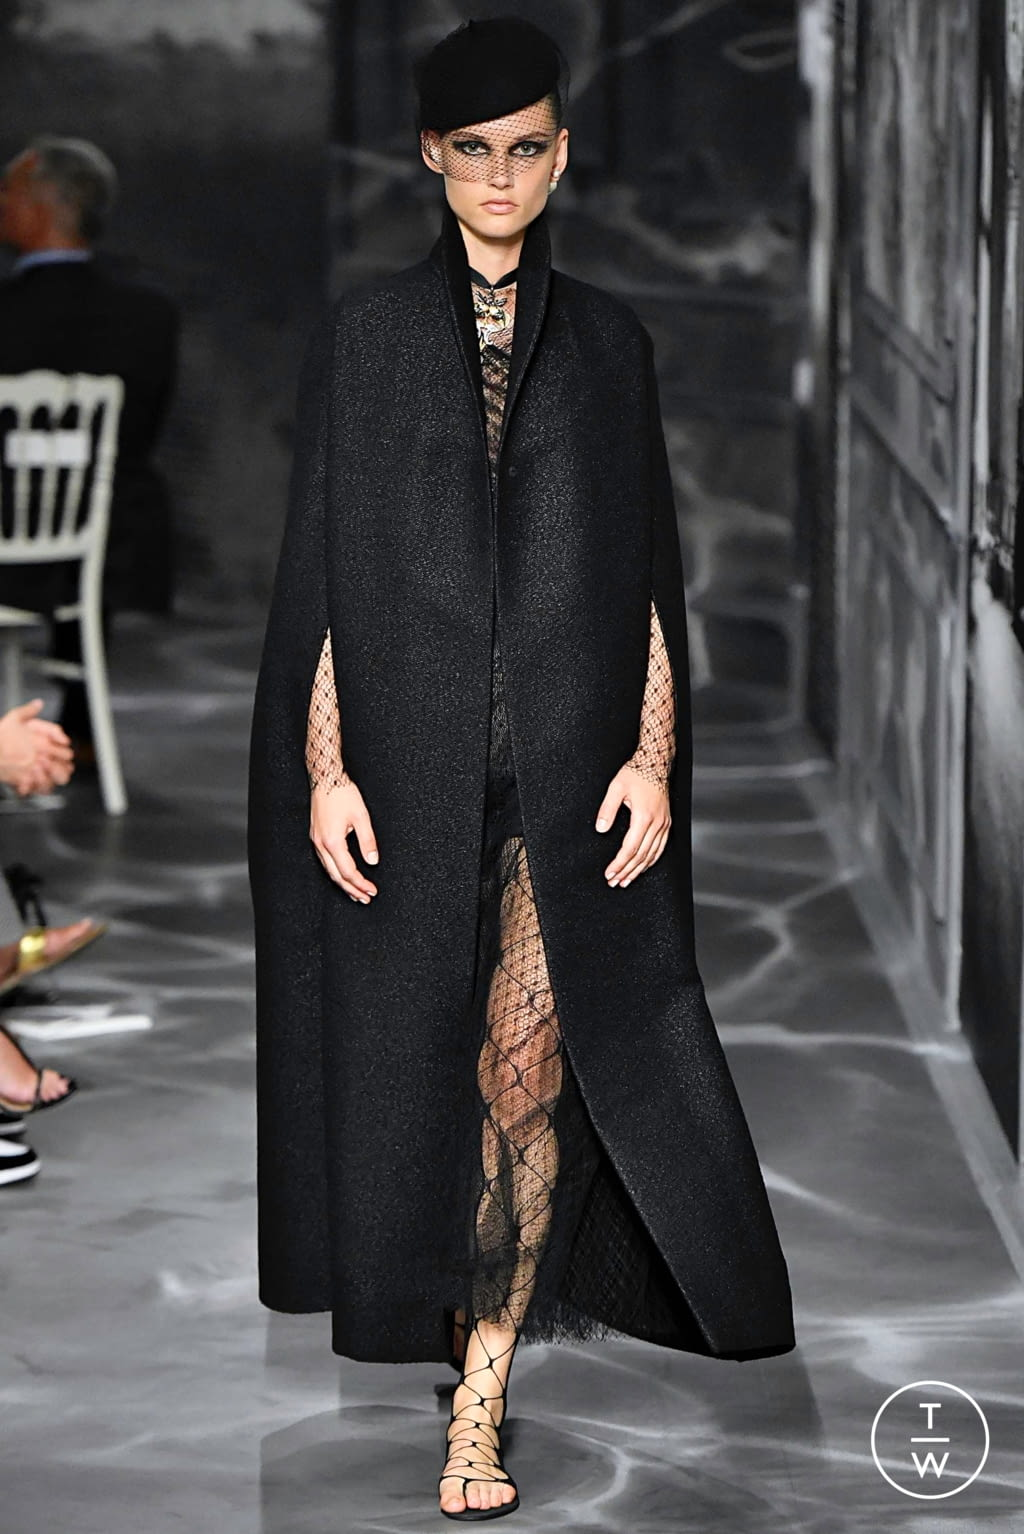 Fashion Week Paris Fall/Winter 2019 look 32 from the Christian Dior collection 高级定制